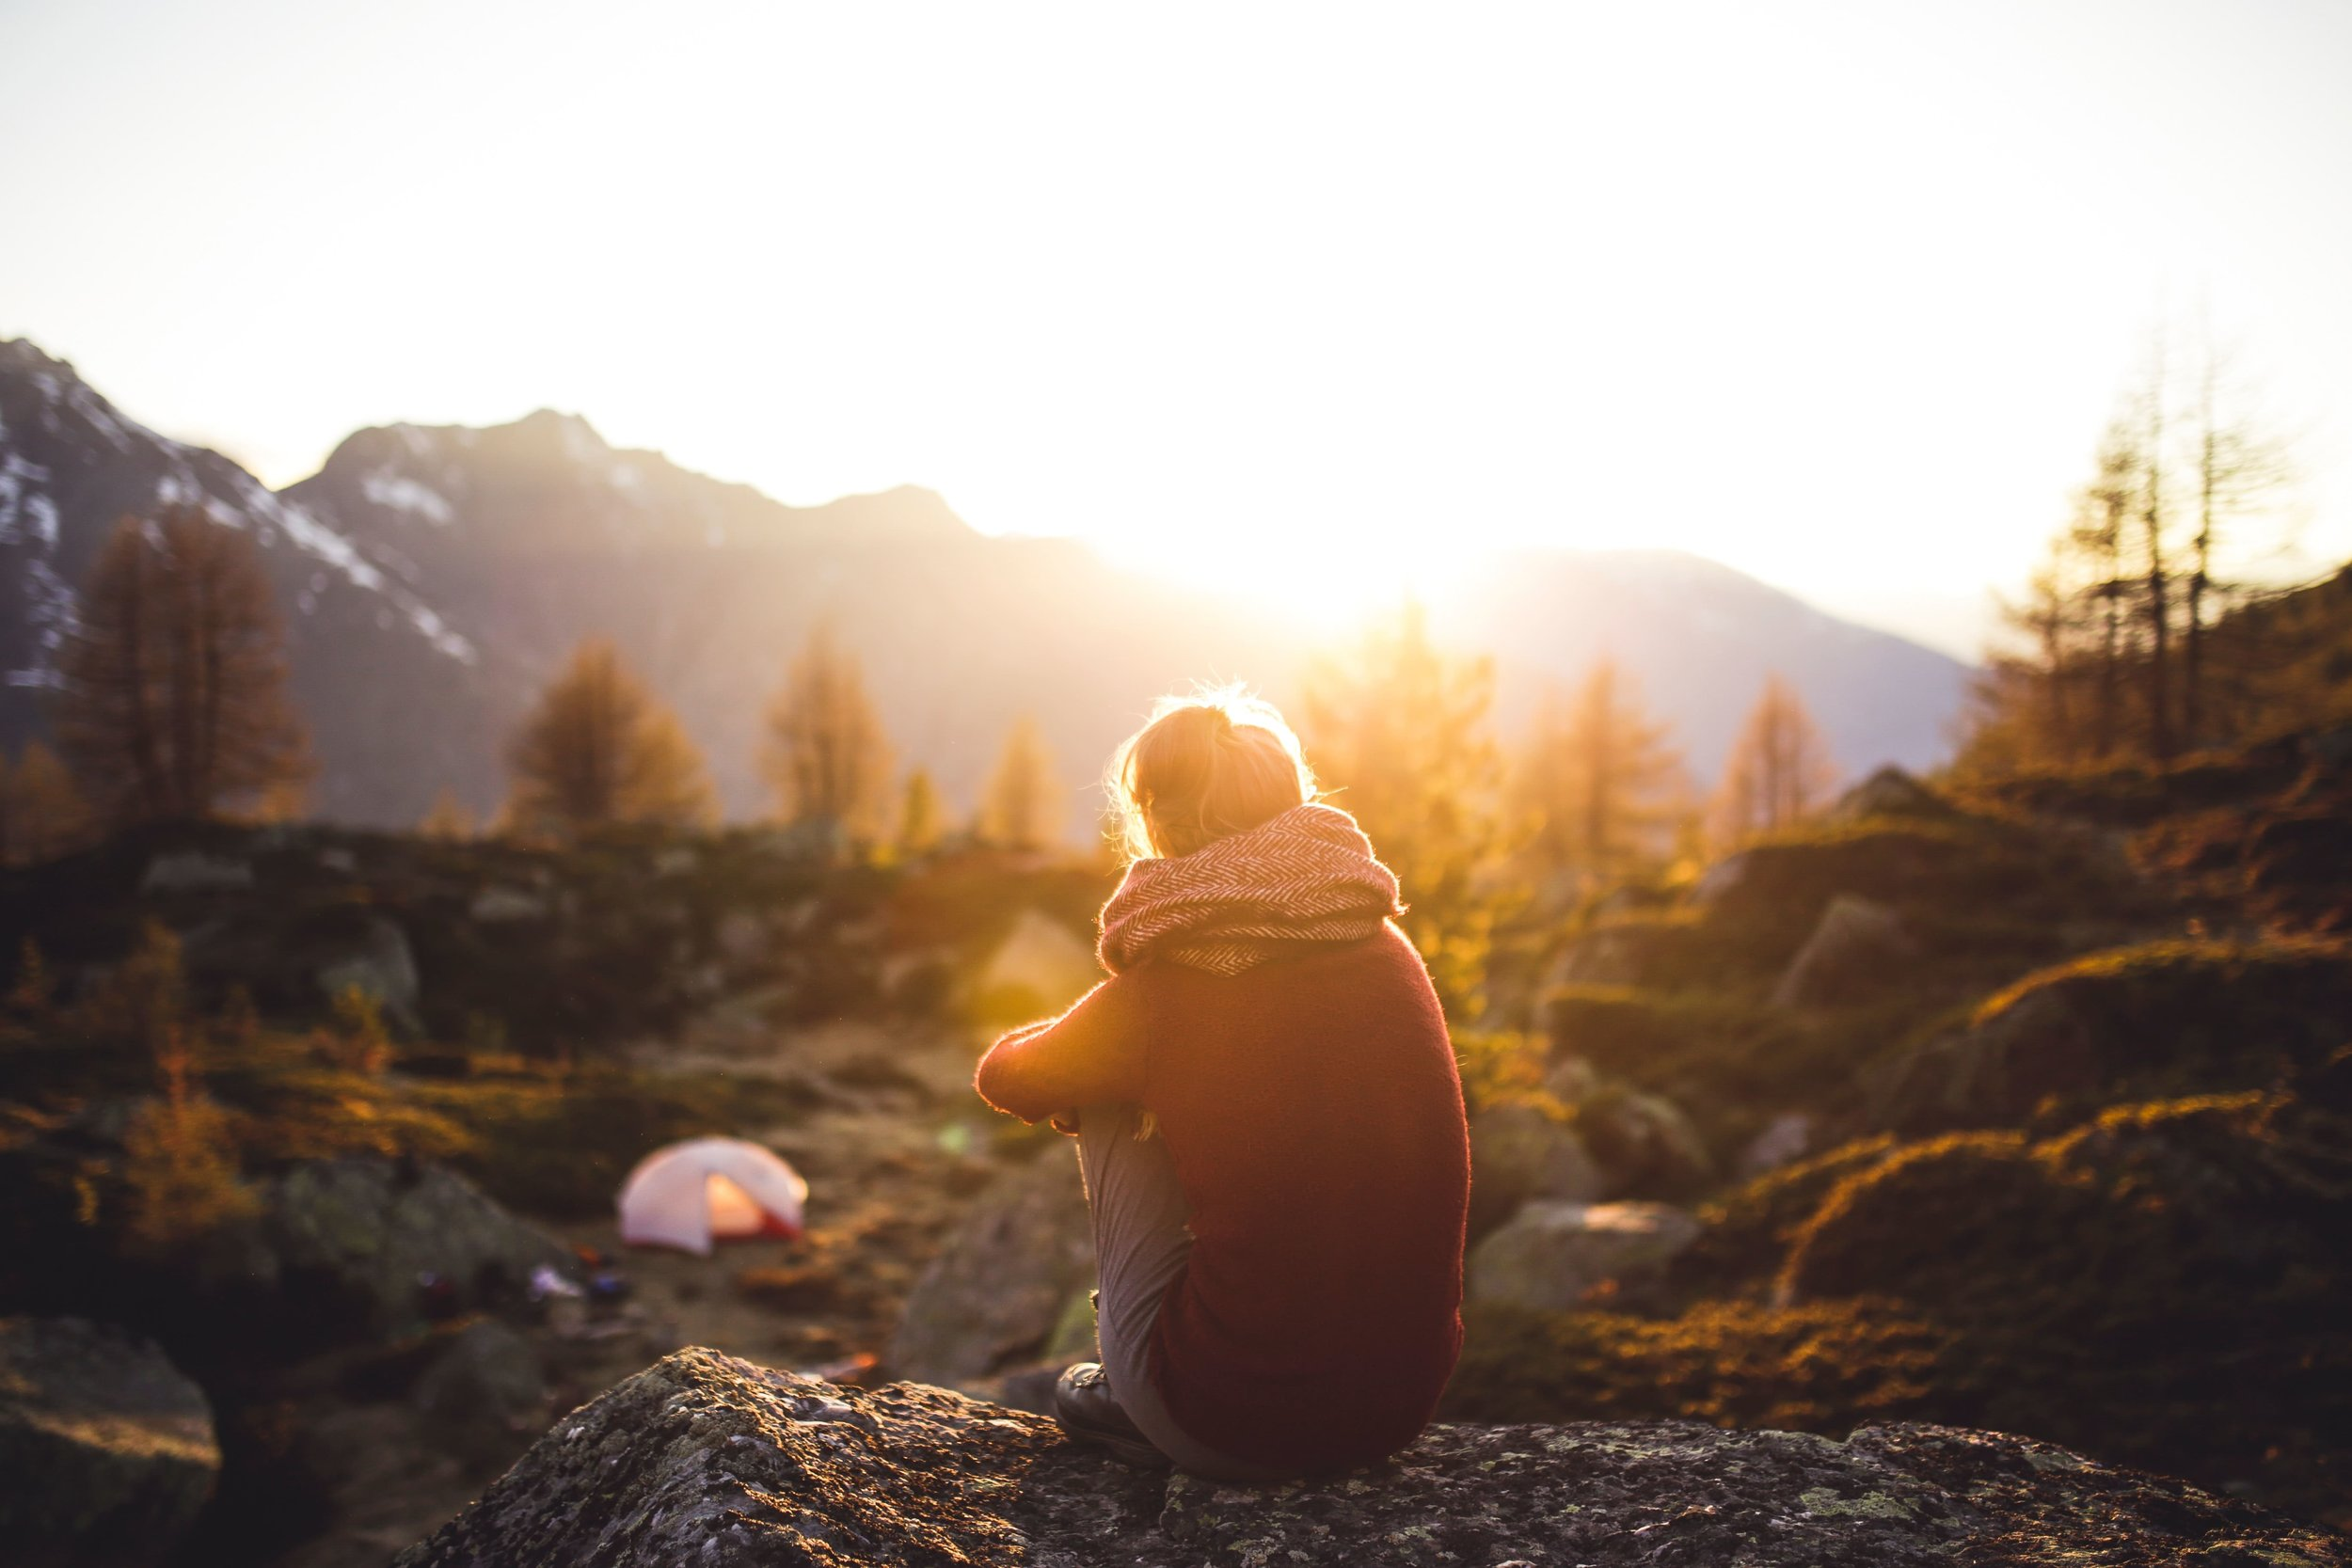 girl sitting alone in nature at sunset